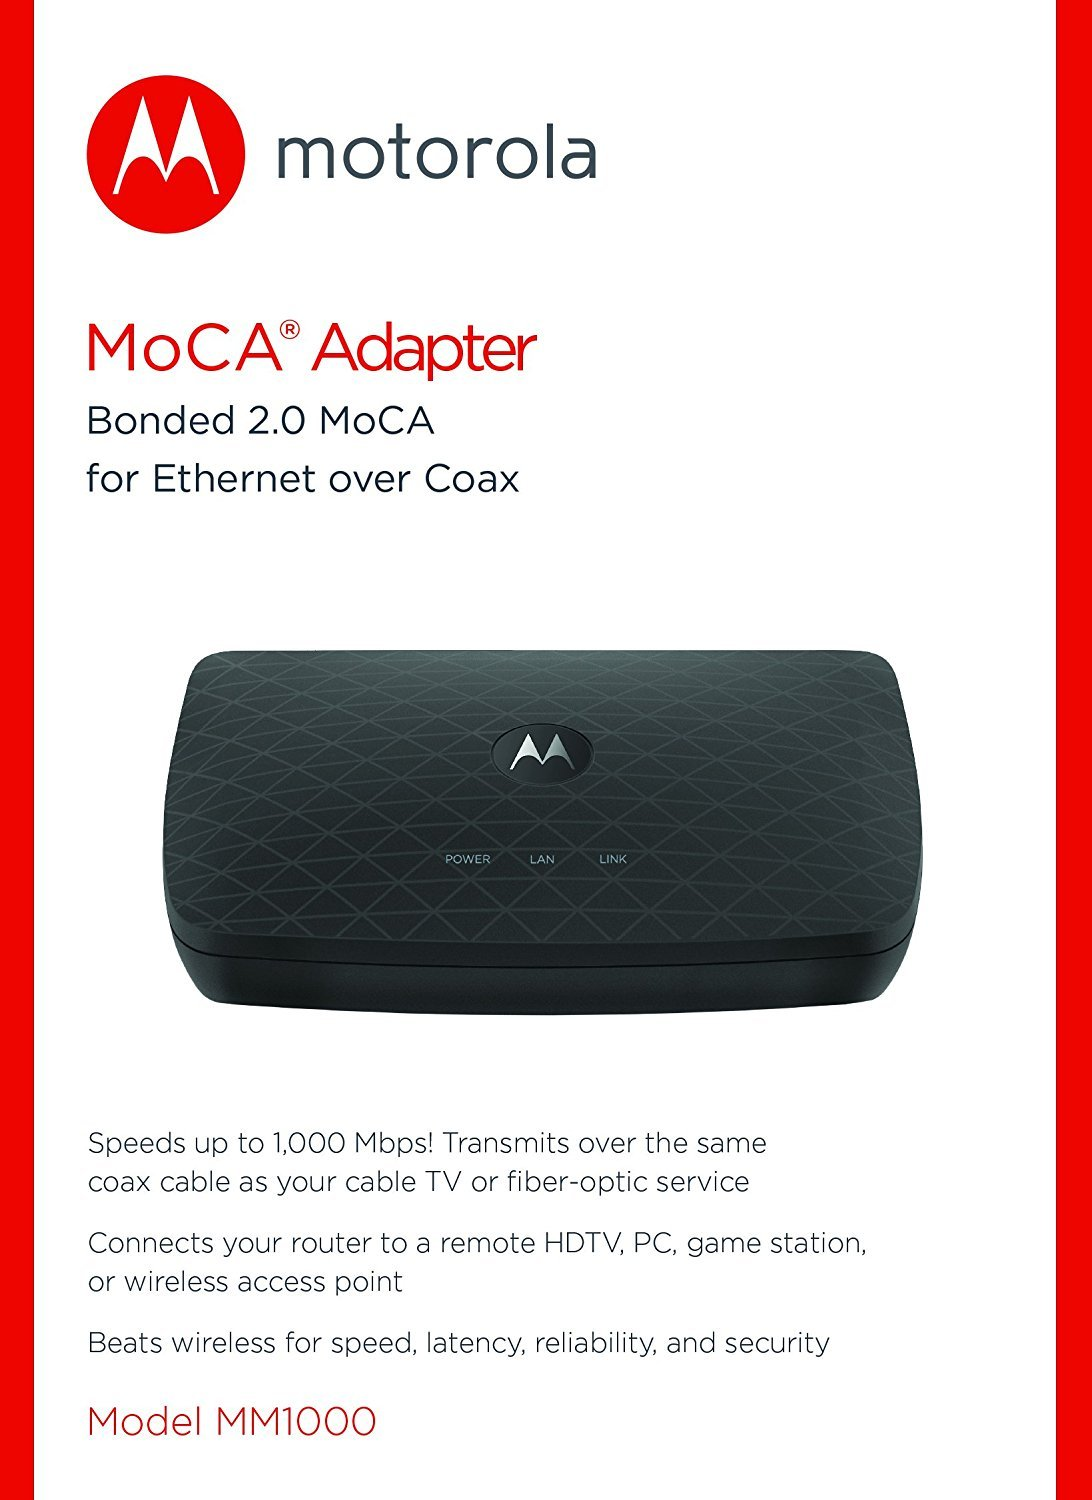 Motorola Moca Adapter For Ethernet Over Coax 1000 Mbps Verizon Fios Home Wiring Diagram Bonded 20 Model Mm1000 Computers Accessories